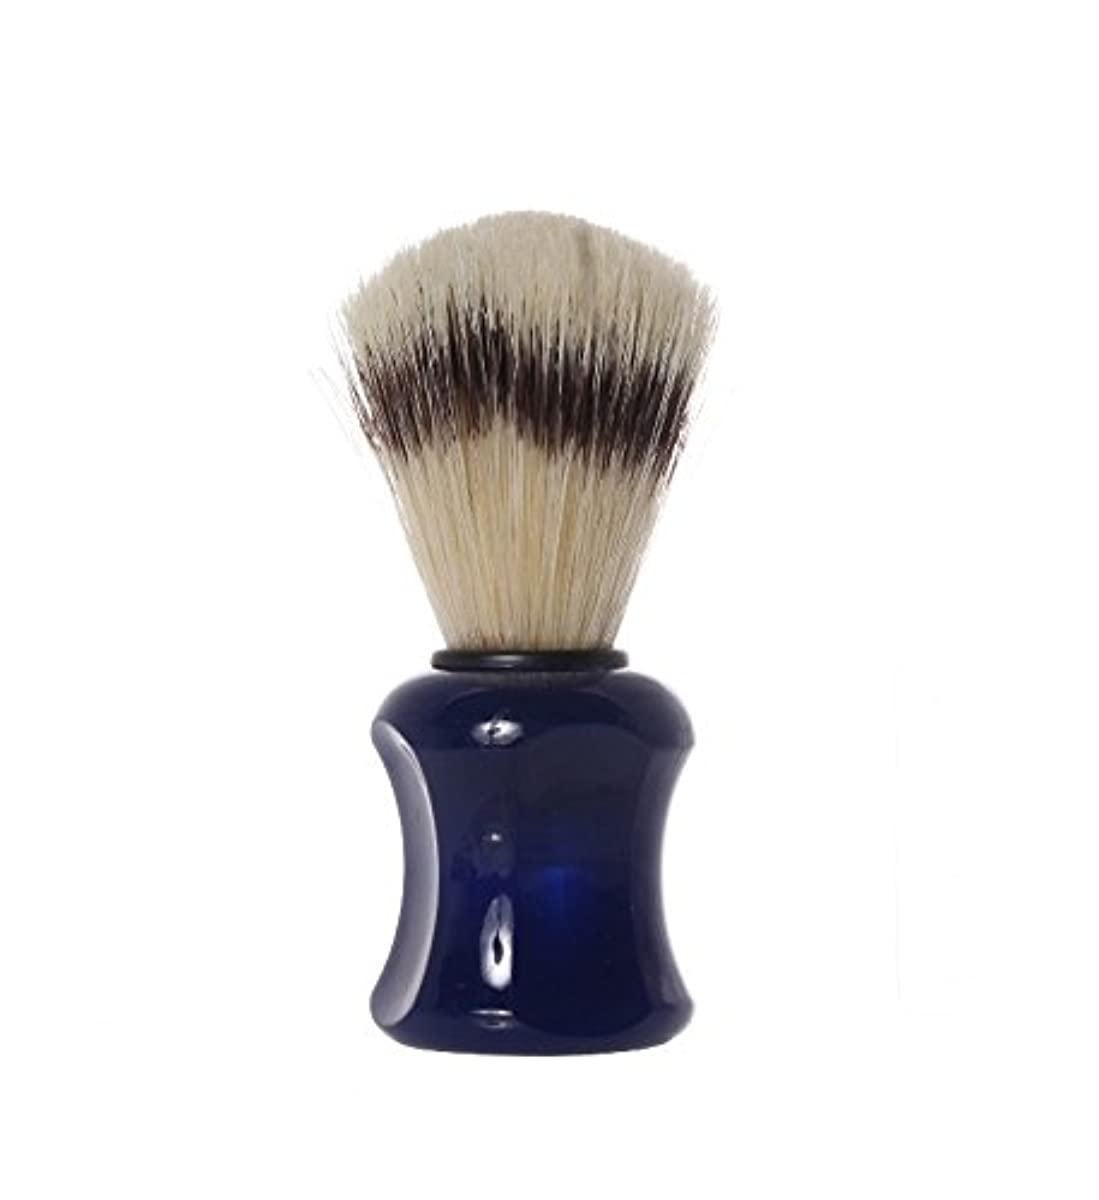 白菜セラーアンドリューハリディShaving Brush with pig´s bristles, 10,0 cm, blue - Erbe Solingen